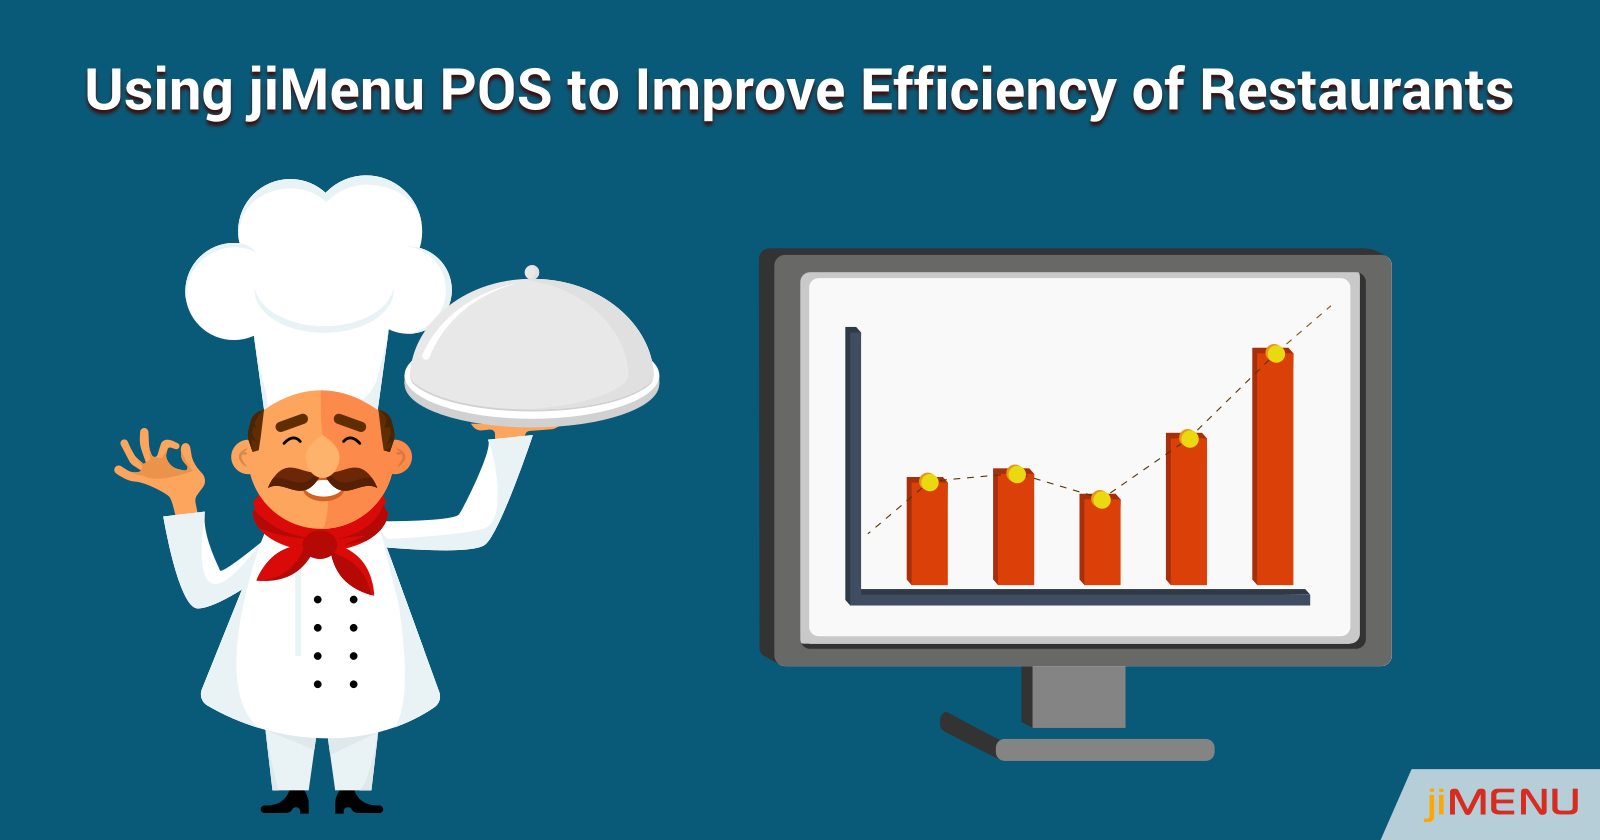 Using jiMenu POS to Improve Efficiency of Restaurants